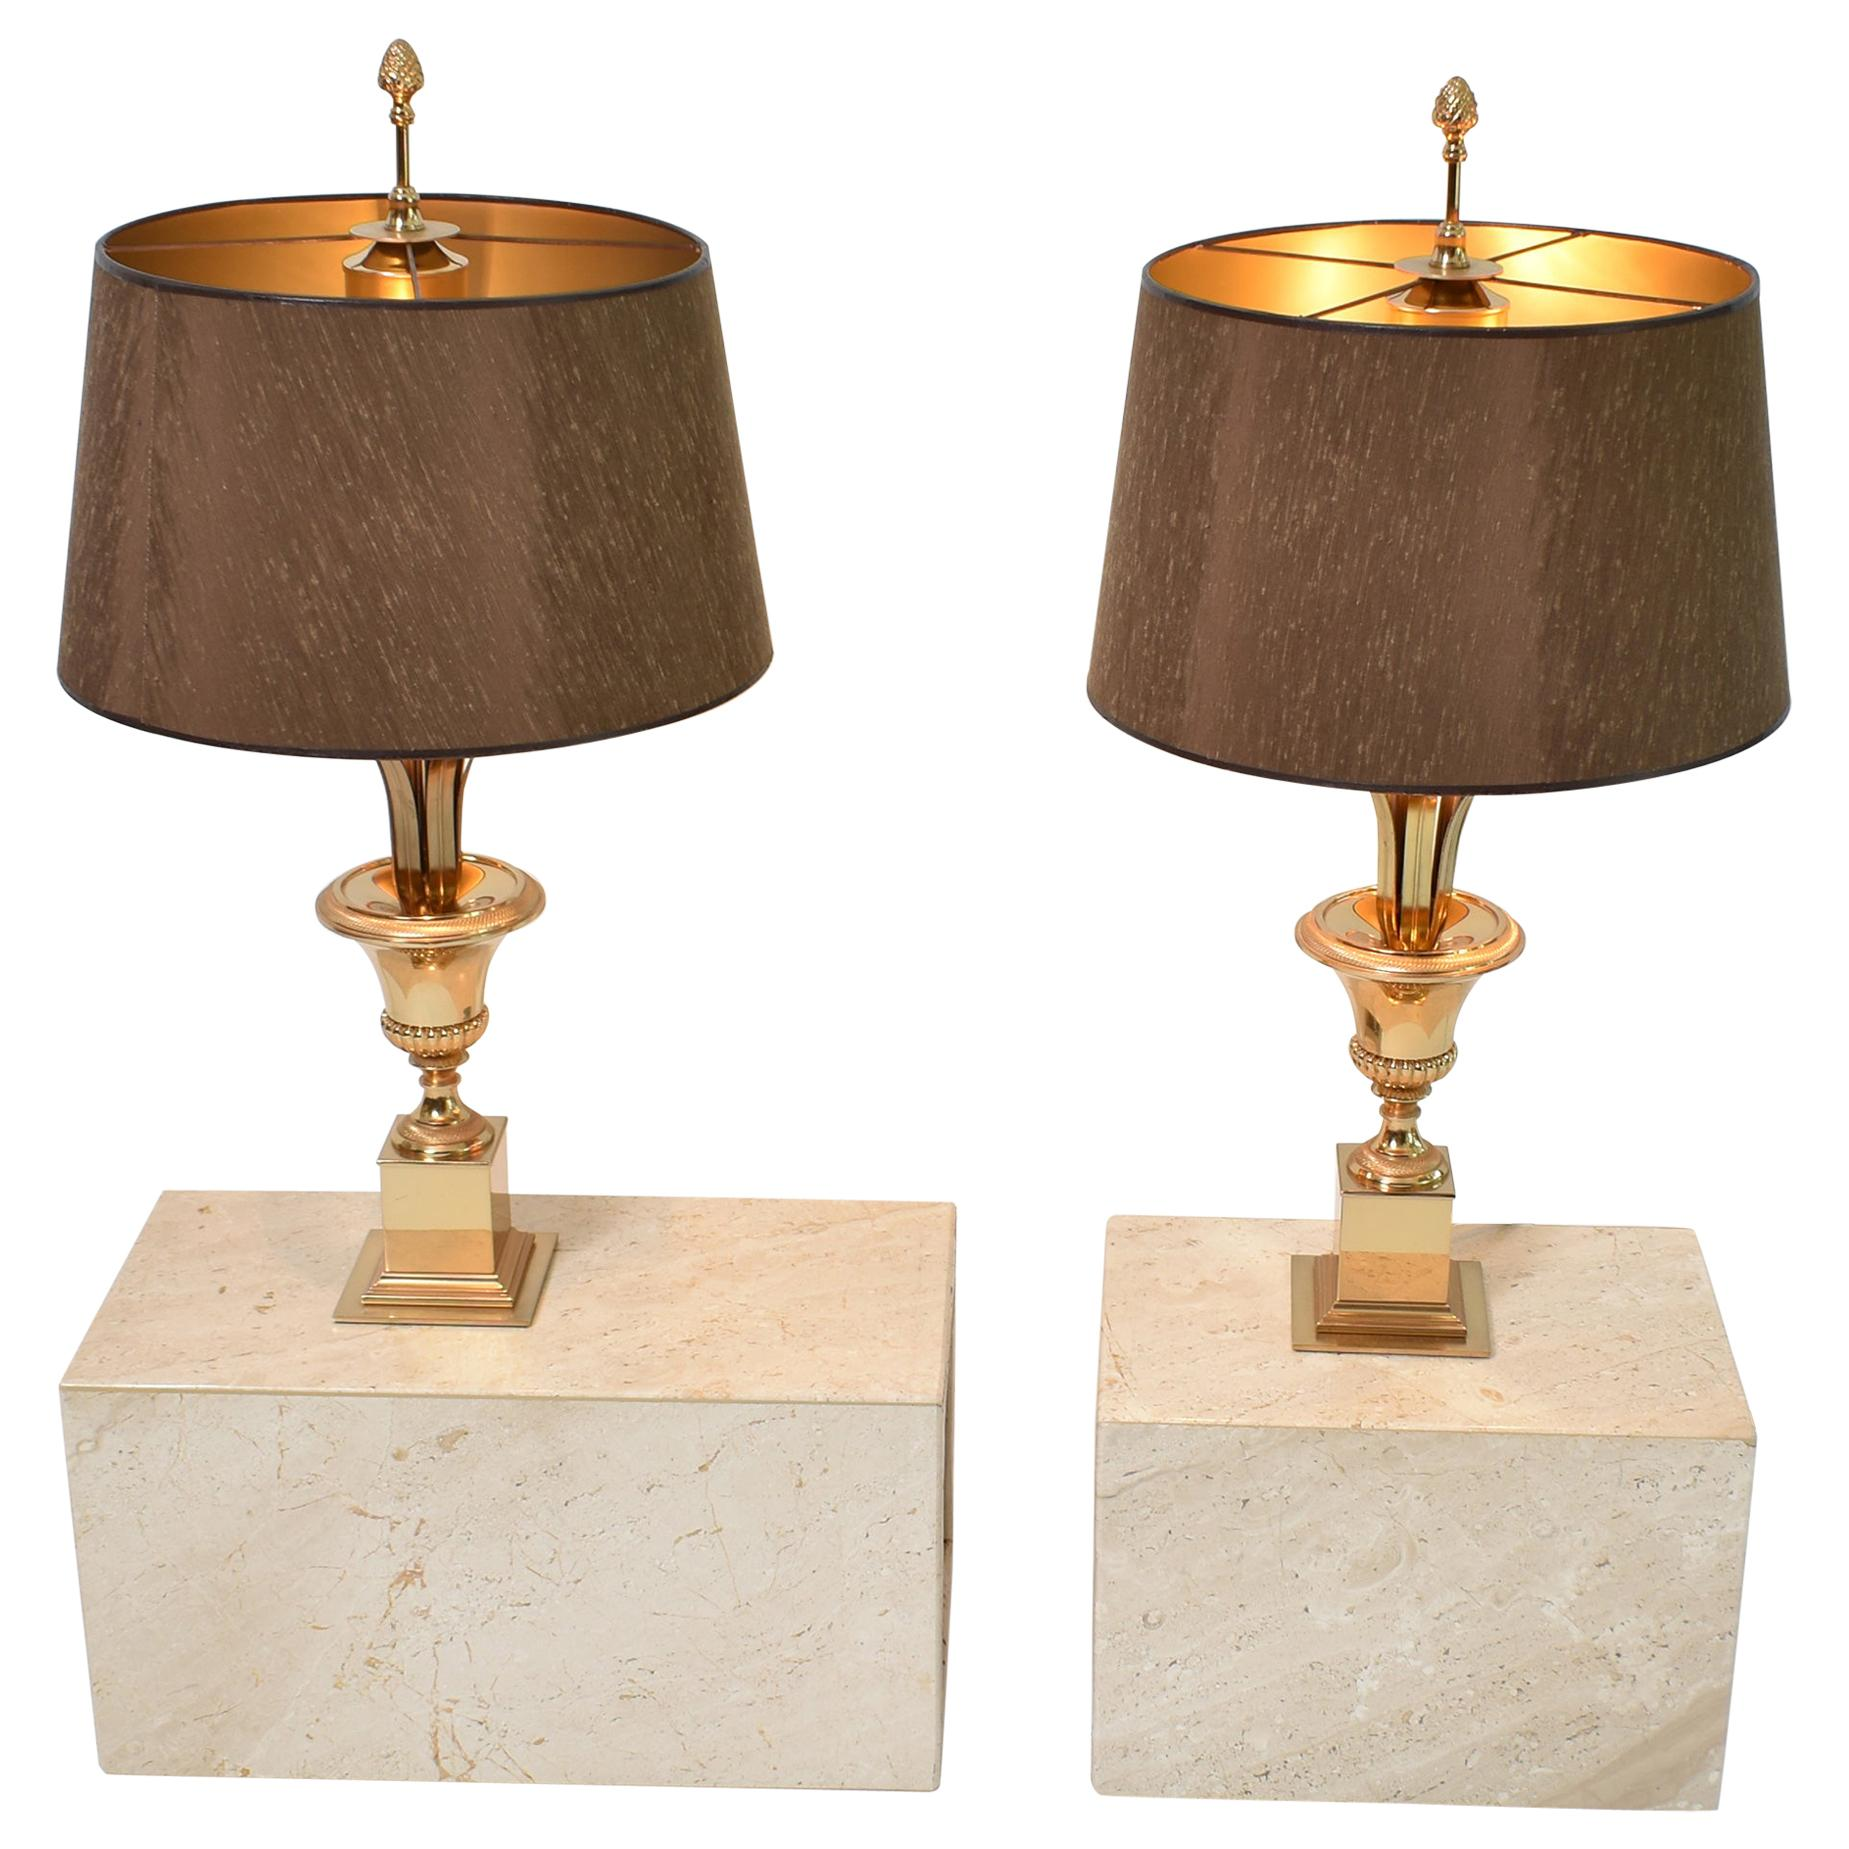 Mid Century Modern Roseaux Table Lamps By Boulanger Belgium 1970 Set Of Two For Sale At 1stdibs